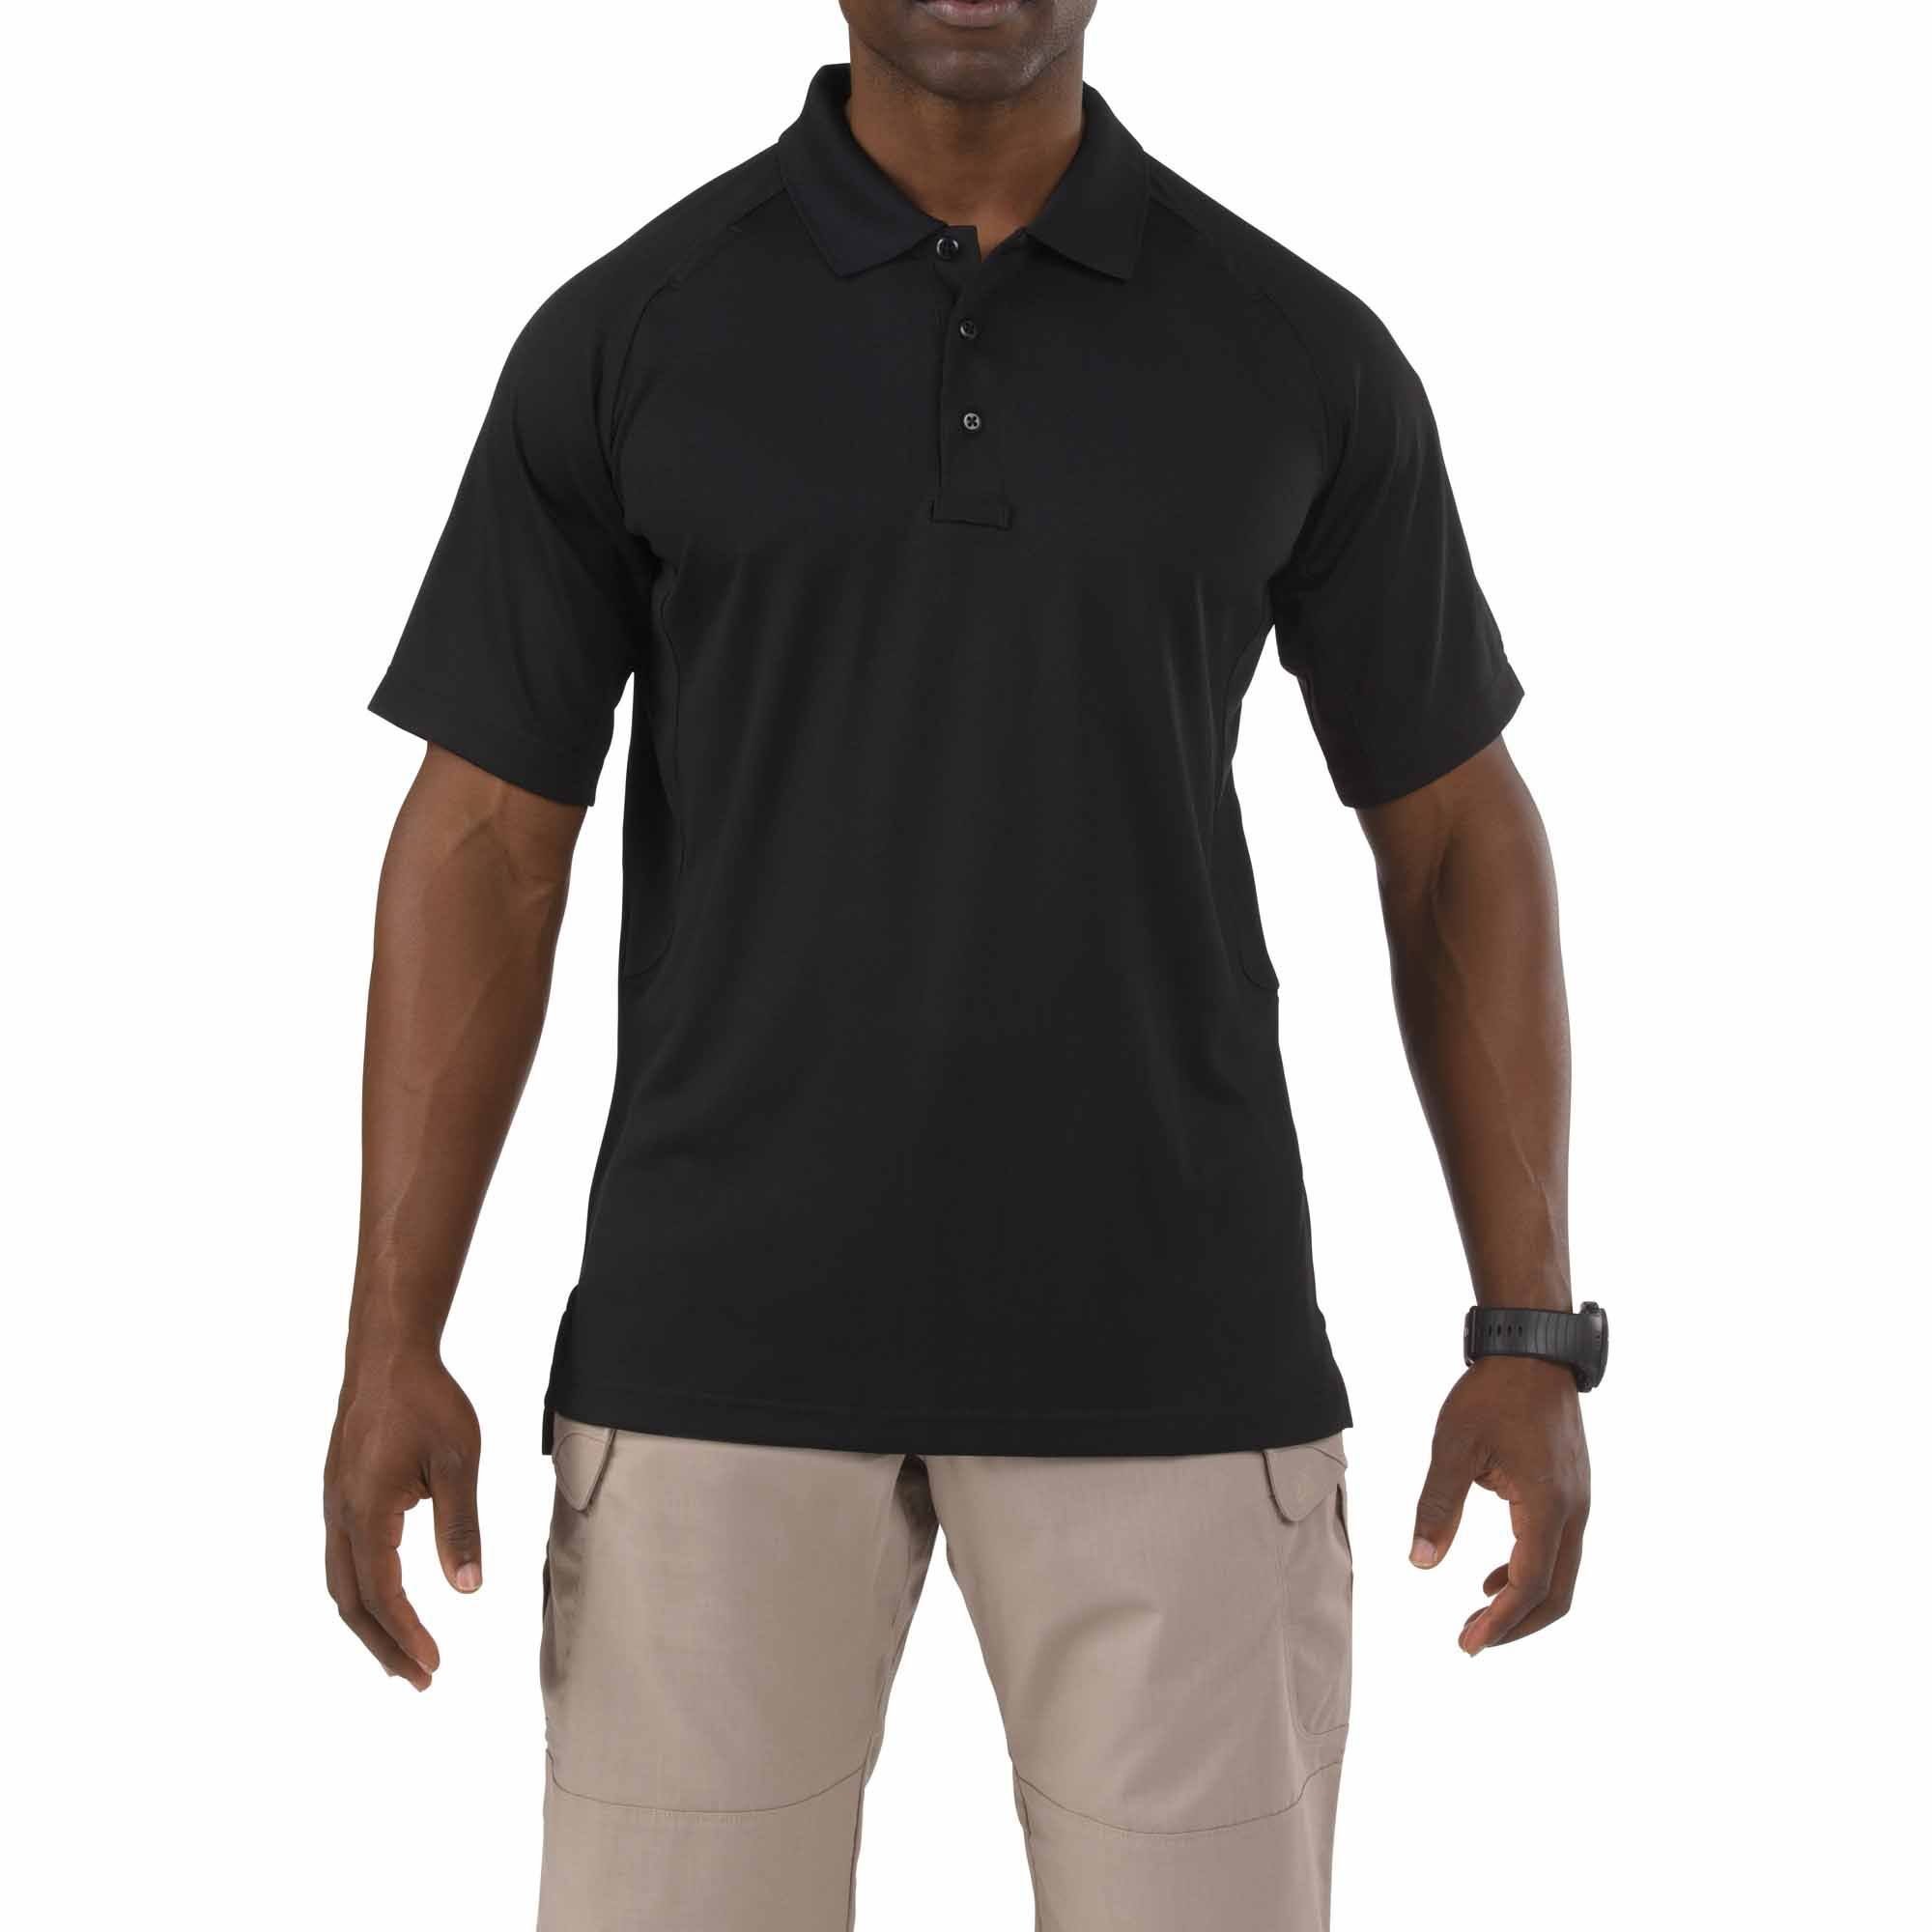 5.11 Tactical Performance Polo Short Sleeve